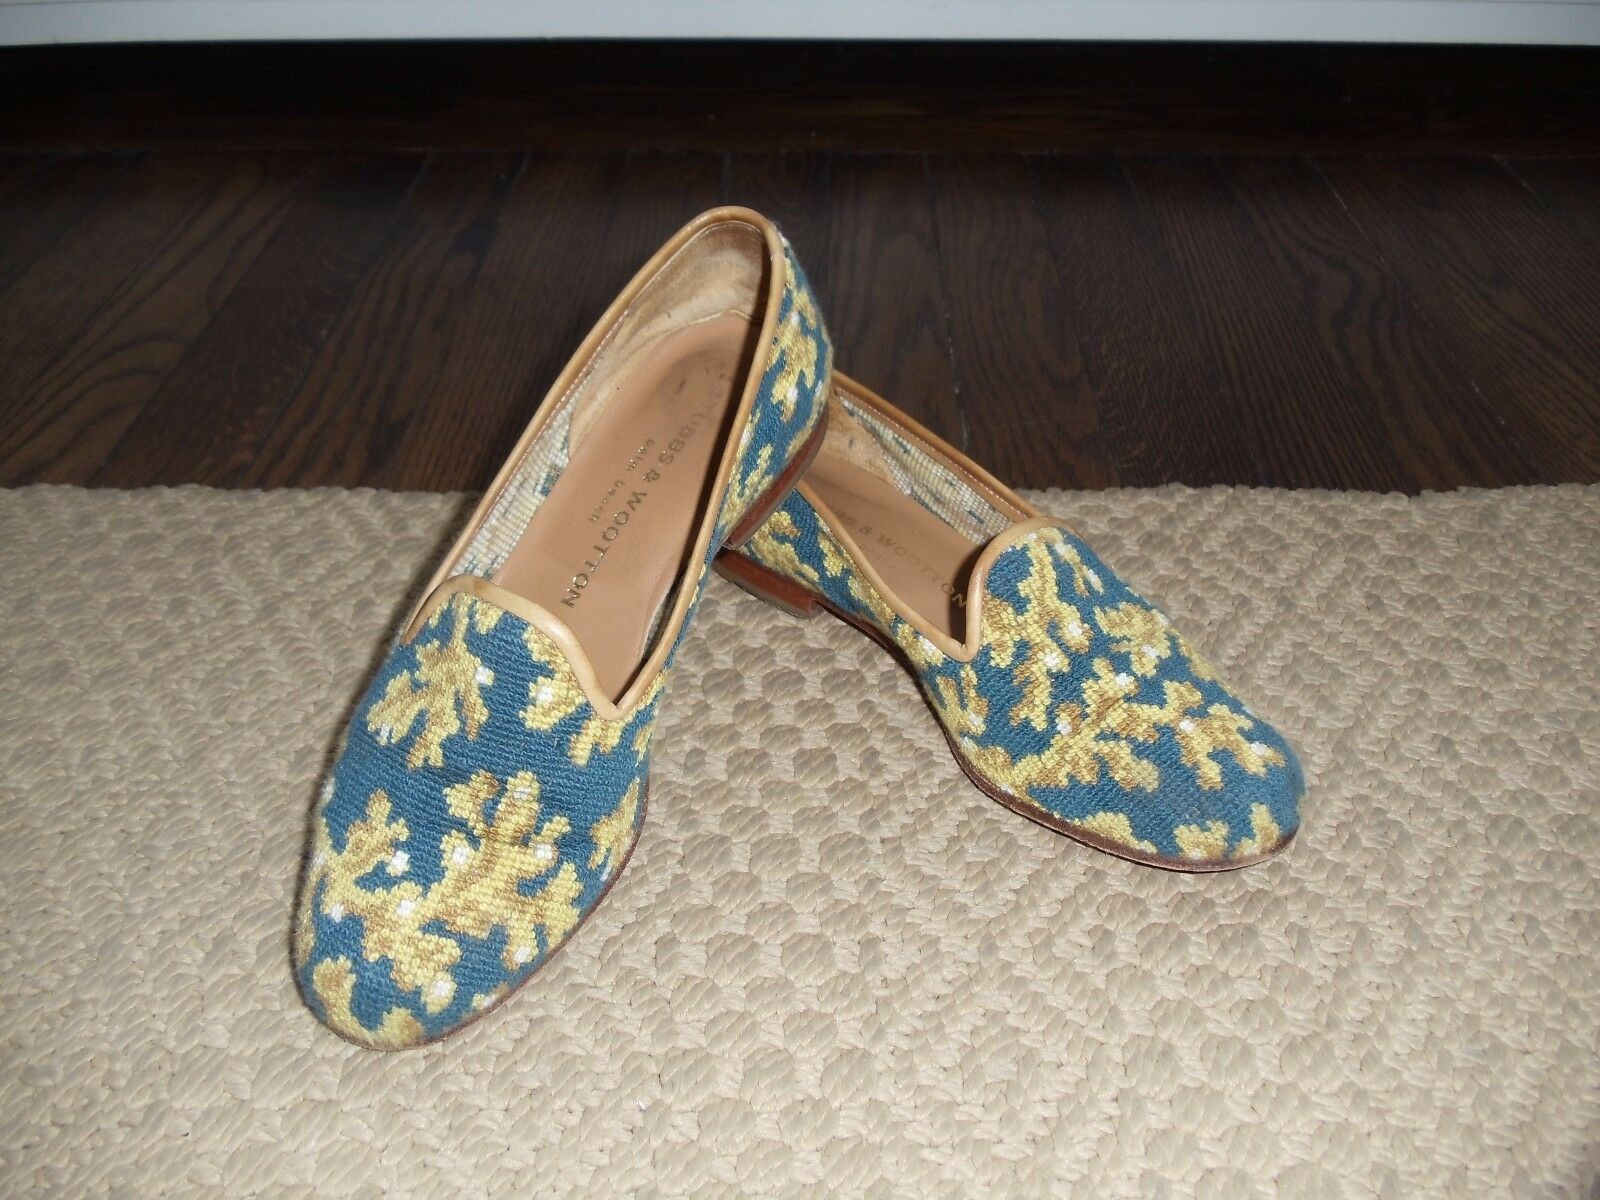 Blau & Gold Coral Design STUBBS & WOOTTON Needlepoint Flat Schuhes   Sz 6M